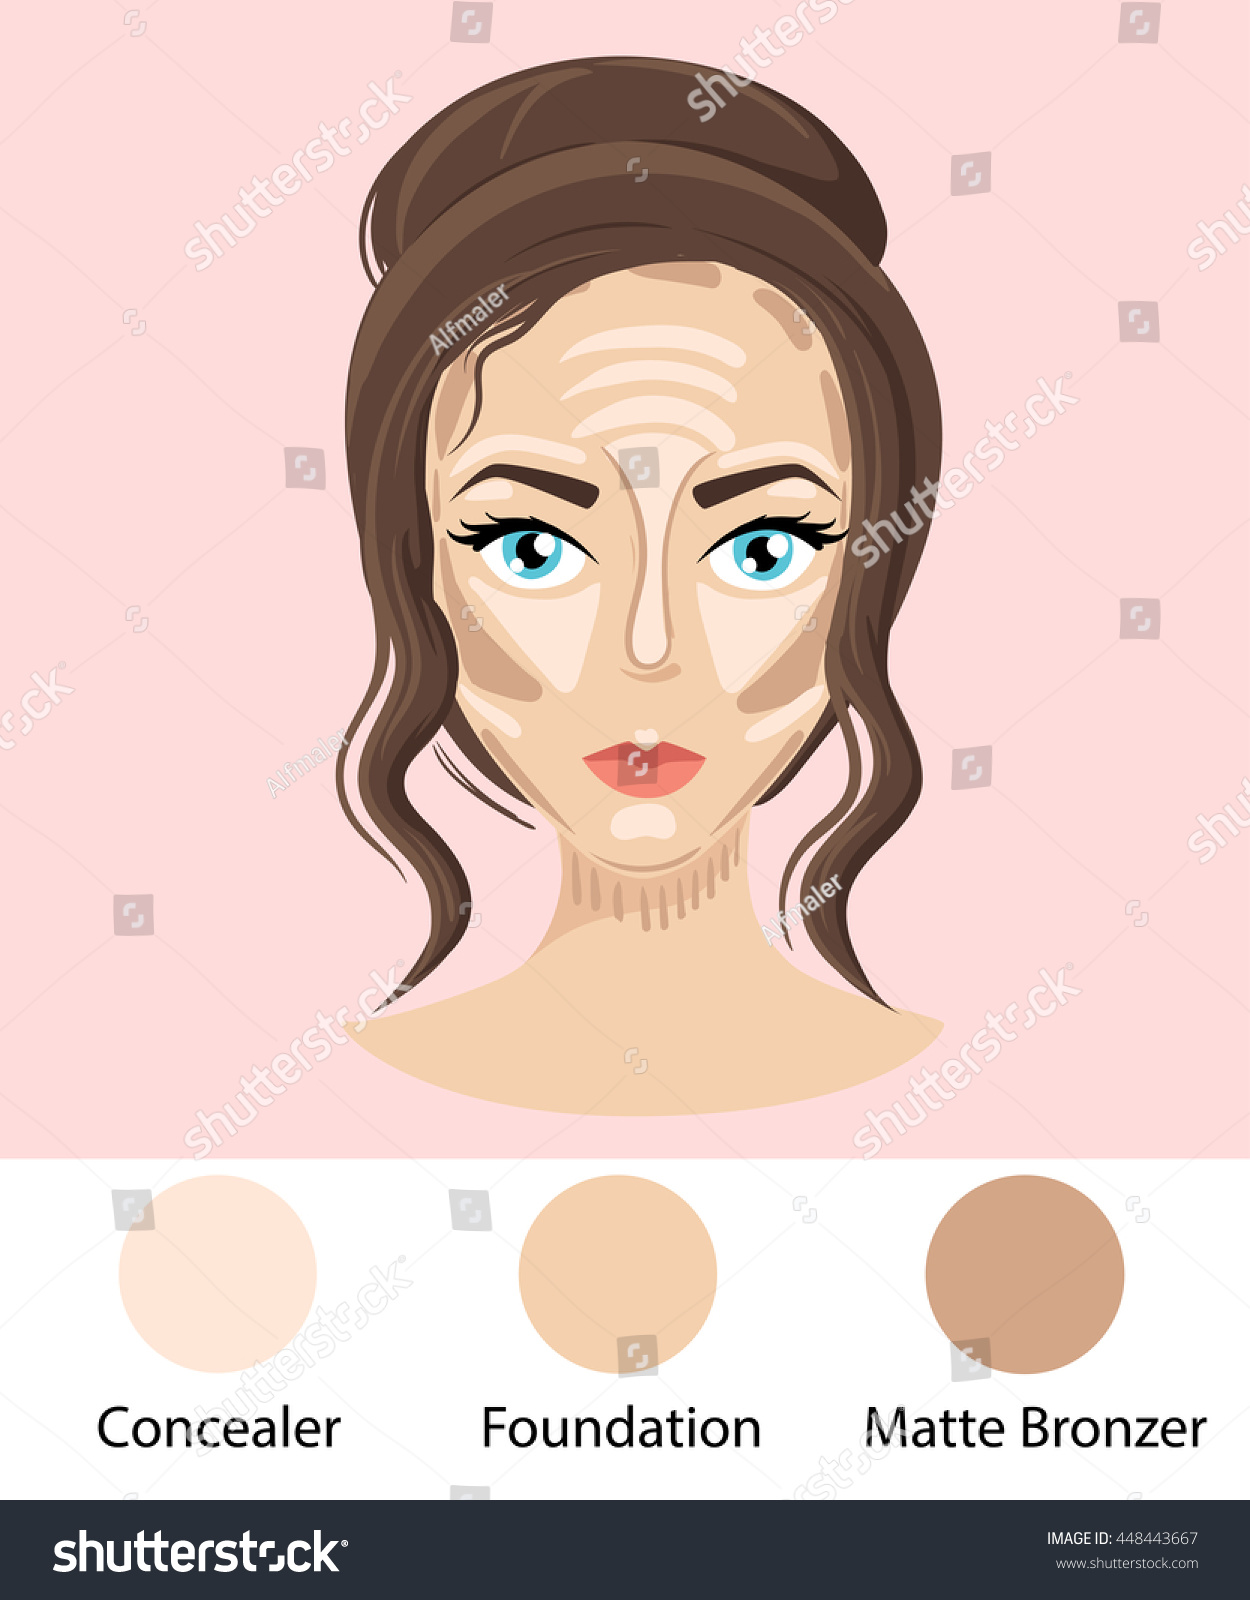 How To Apply Foundation Concealer And Bronzer | Solution for how ...